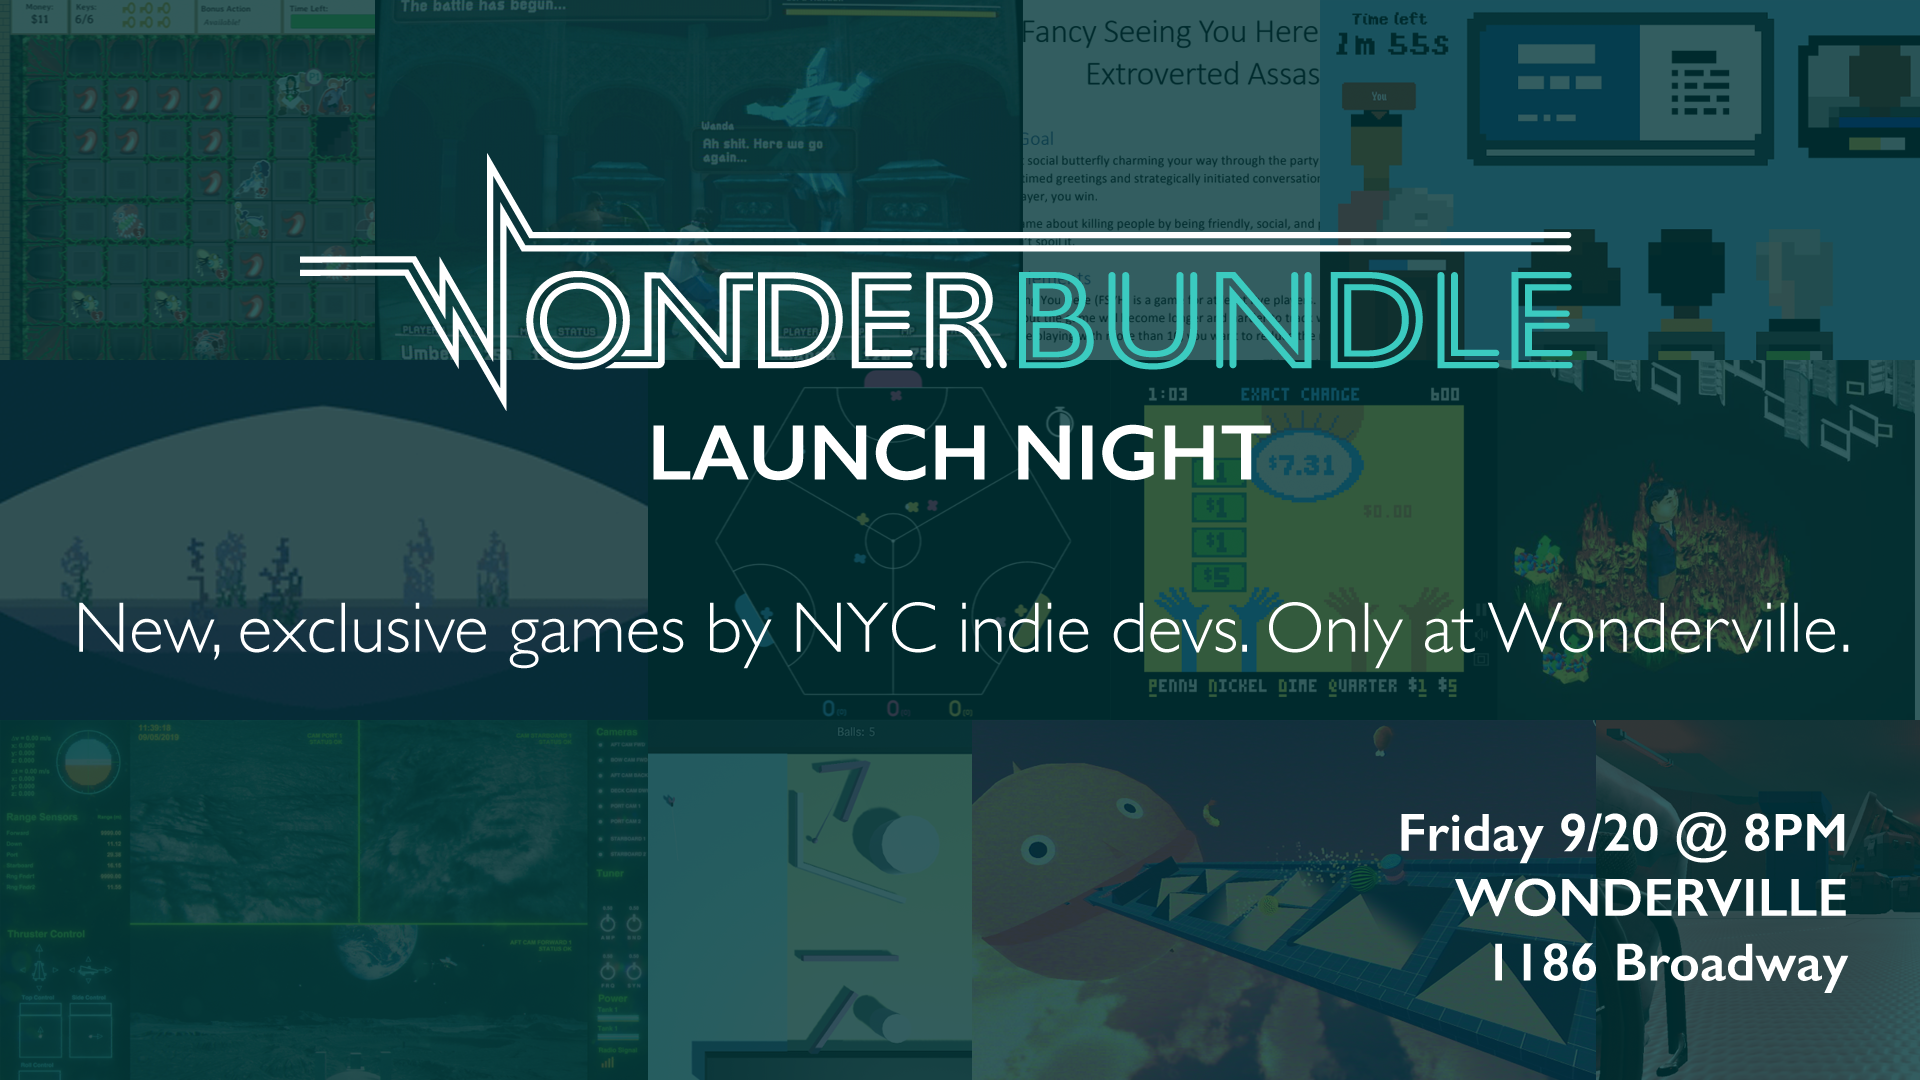 RSVP:  https://withfriends.co/event/2565620/wonderbundle_launch_night